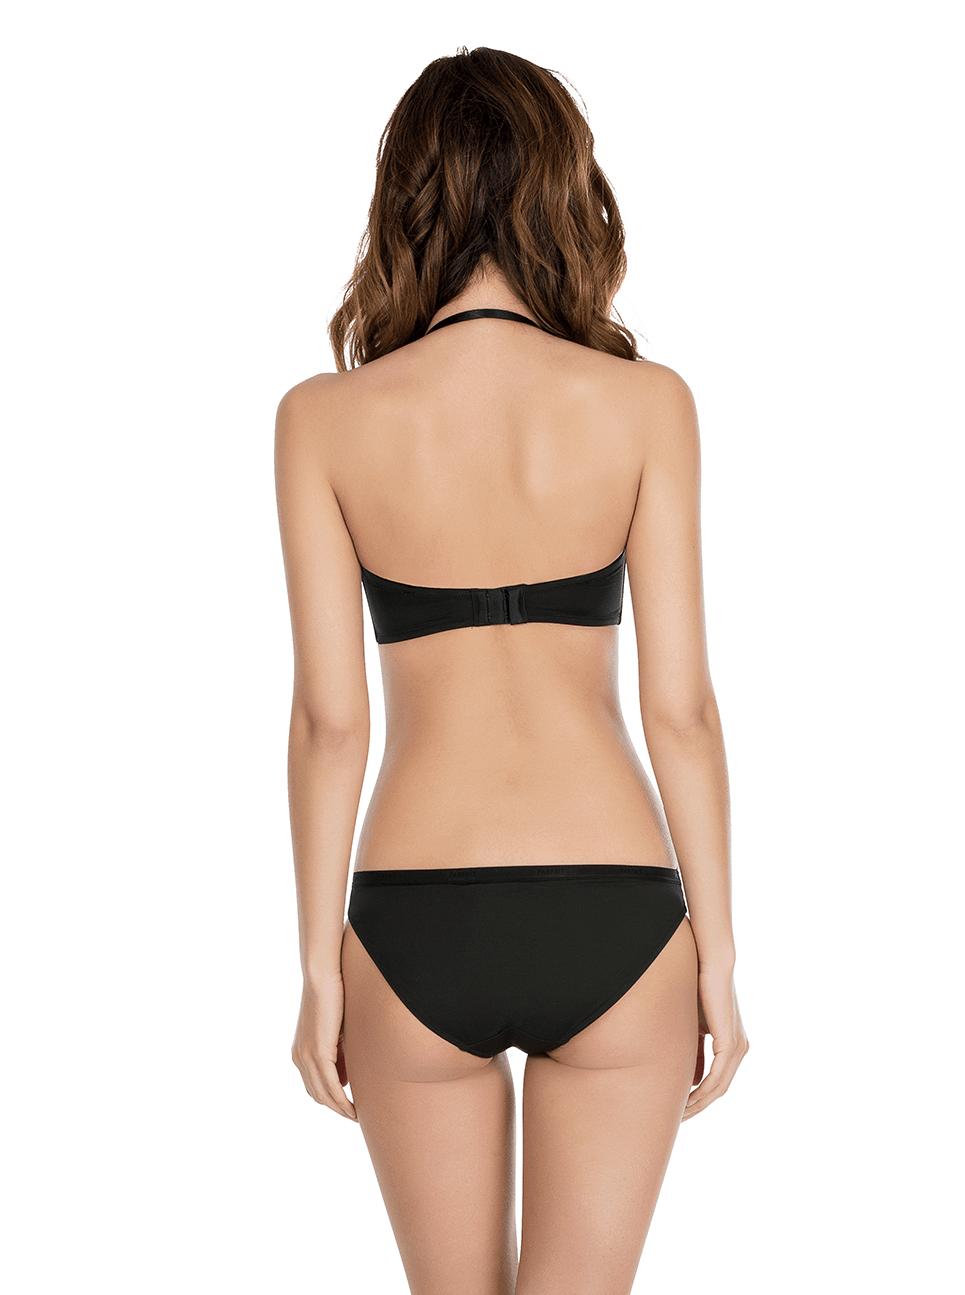 Lynn PushUpStraplessBraP13112 BikiniP13013 Black Halter Back - Lynn Push-up Strapless Bra - Black - P13112